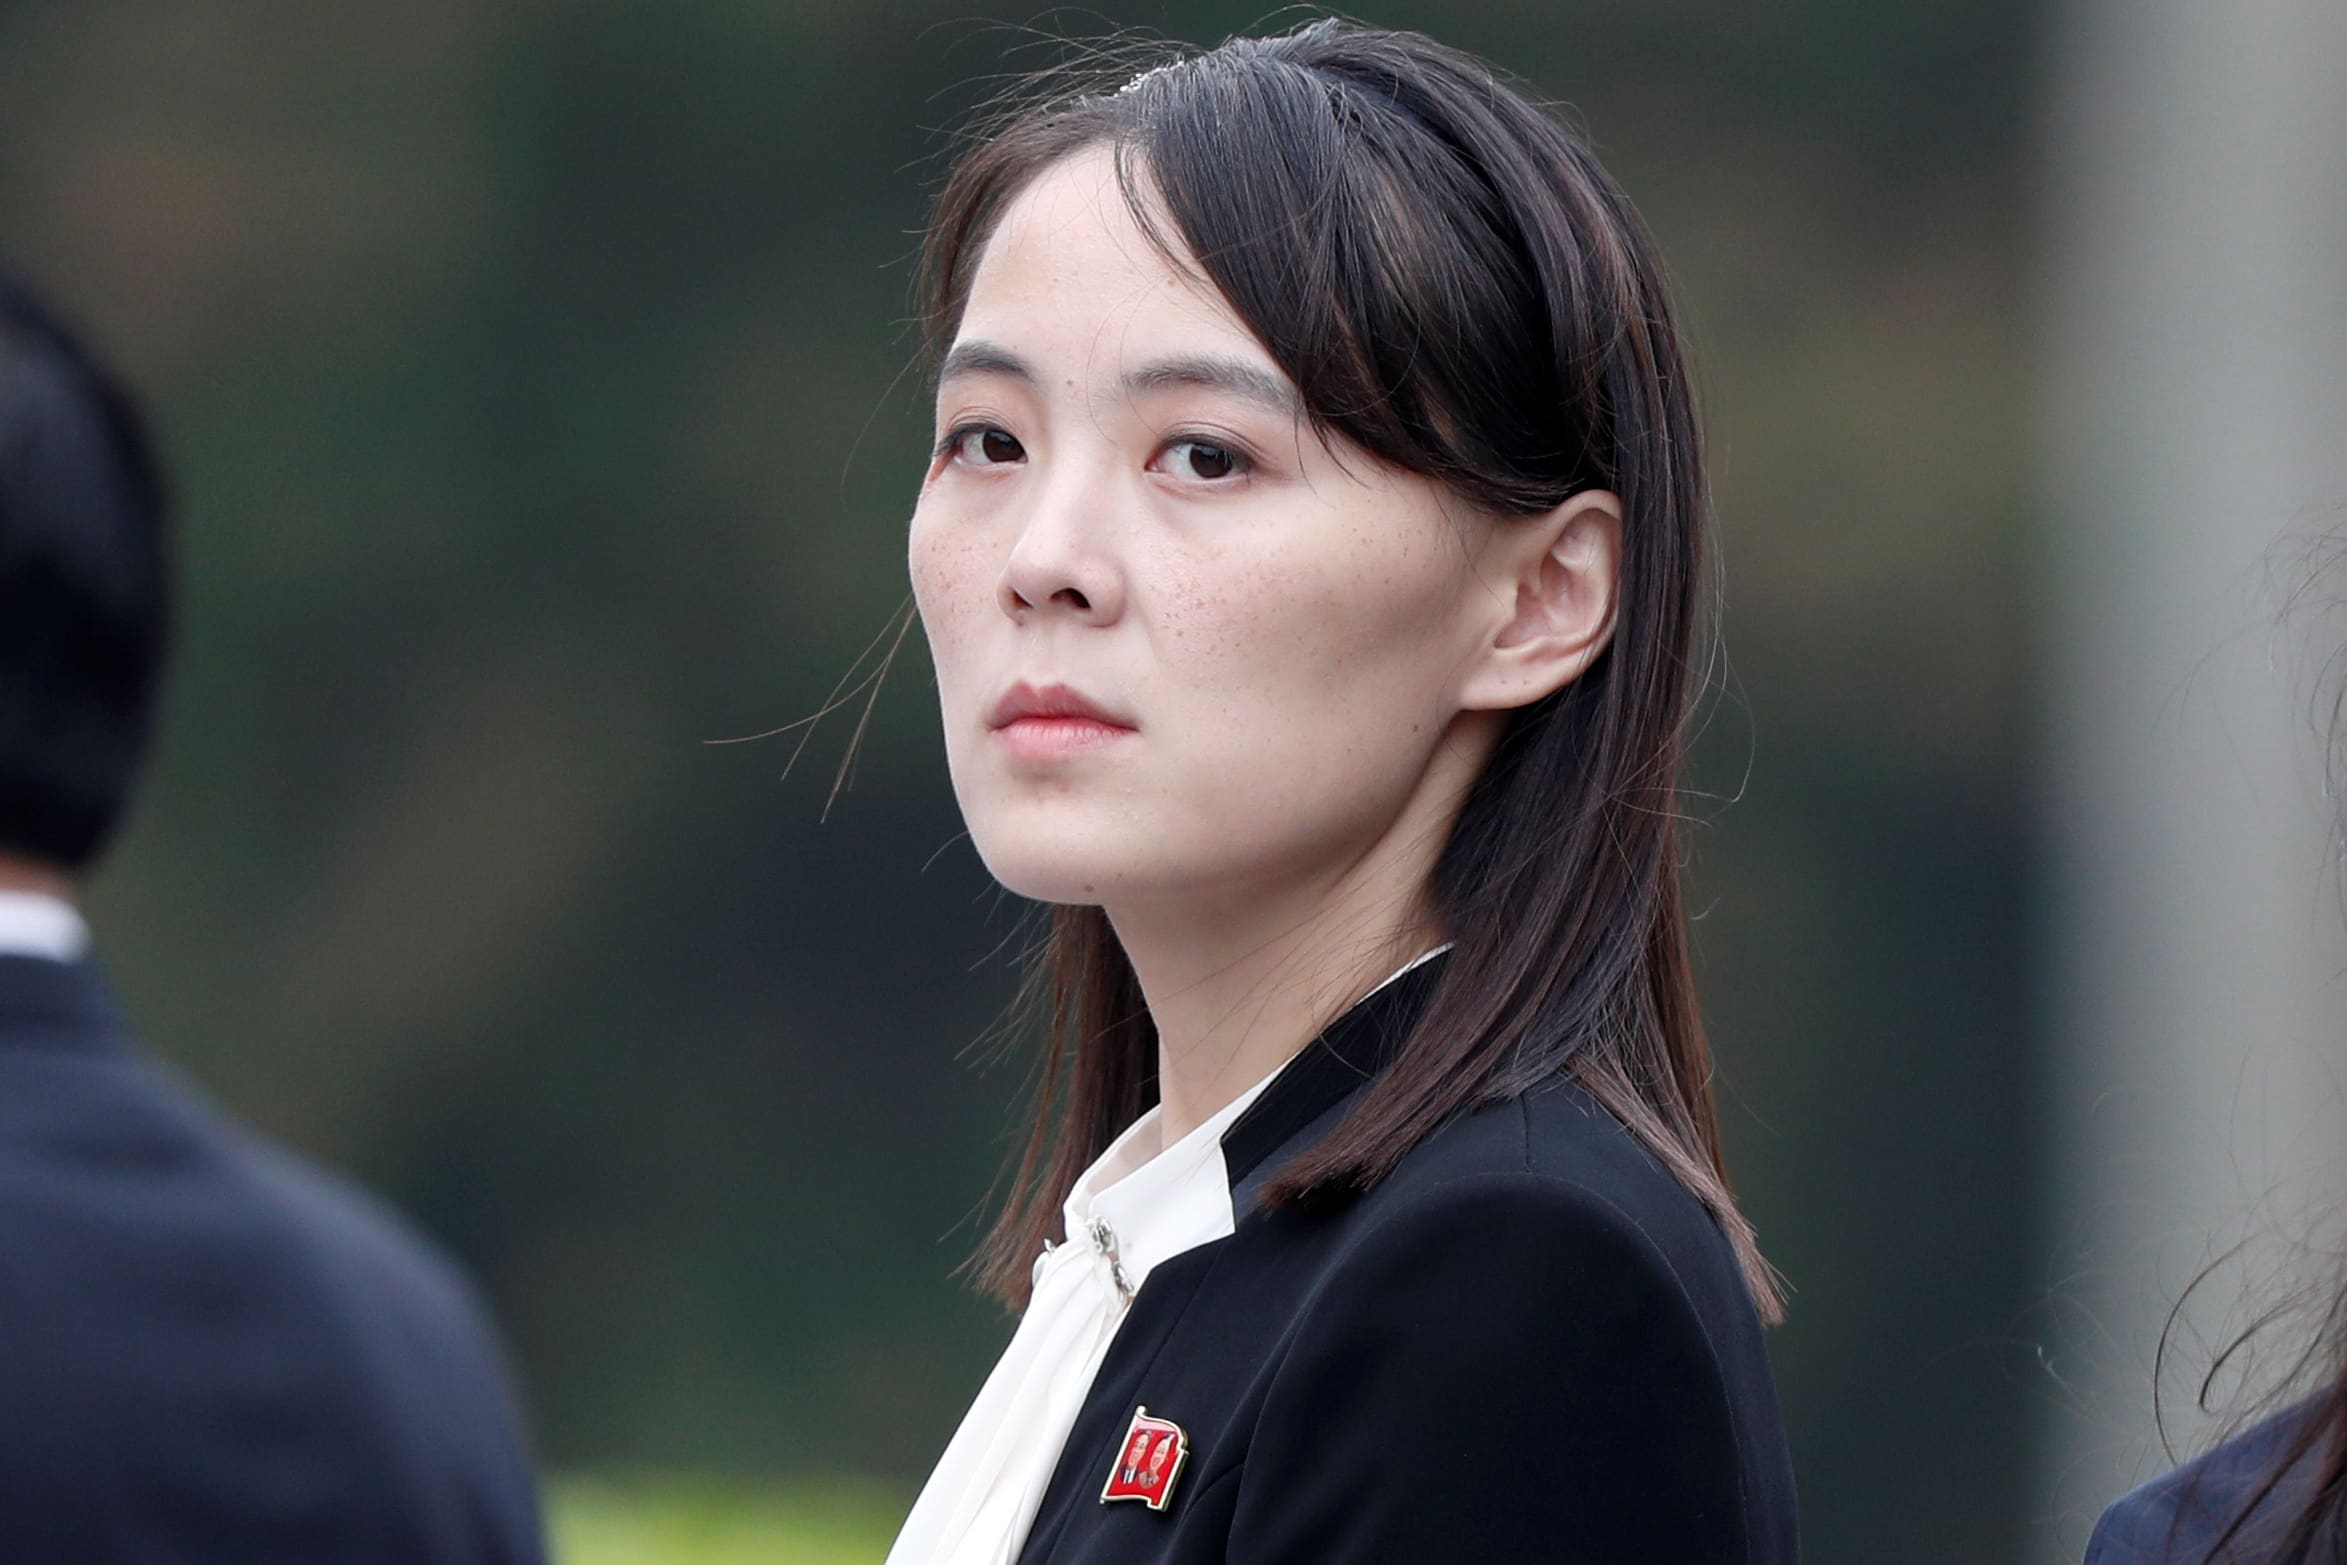 Kim Jong Un's powerful sister sends warning to Biden administration as Blinken Austin arrive in Asia – CNBC